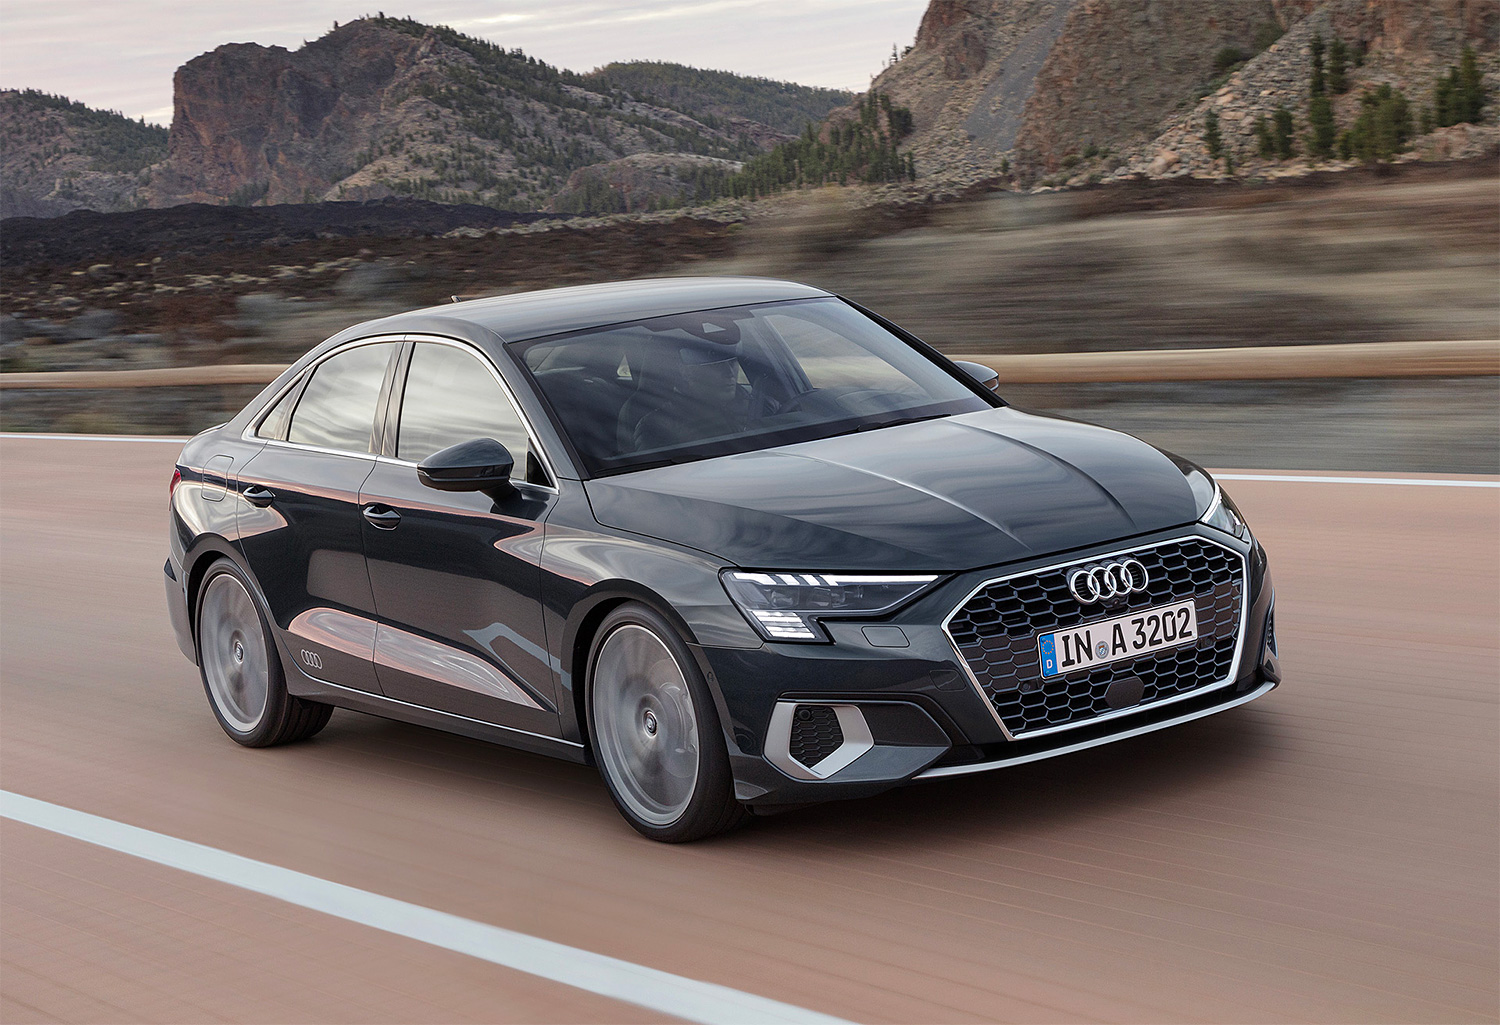 The 2021 Audi A3 Looks Tougher & Cruises Cleaner at werd.com